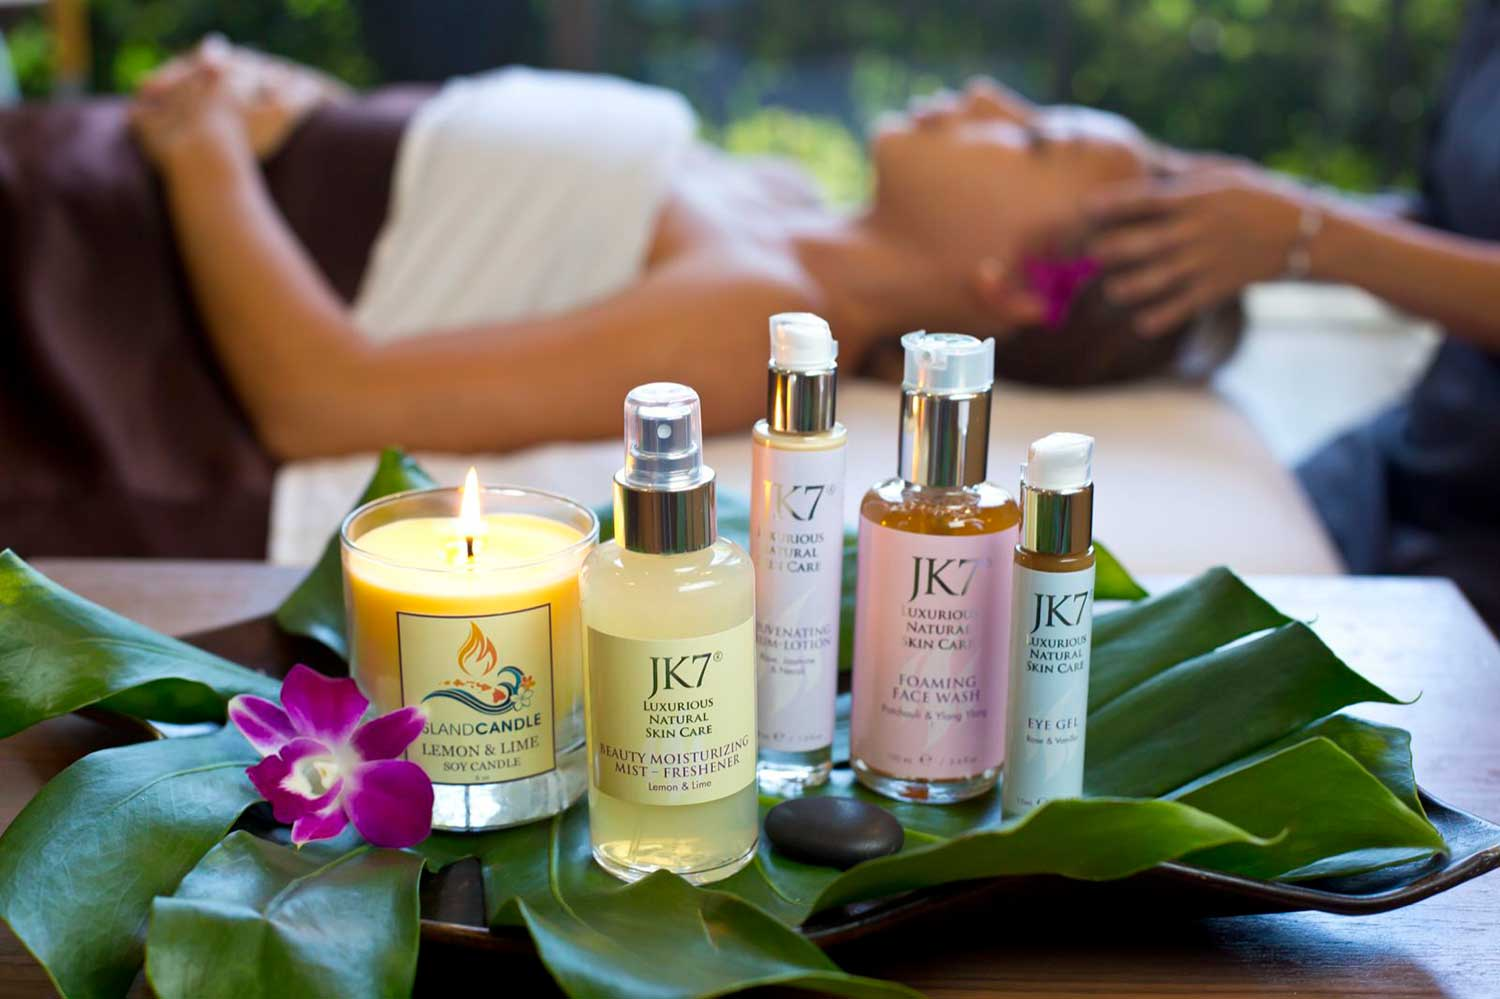 5 items from JK7: various lotions, candles, skincare